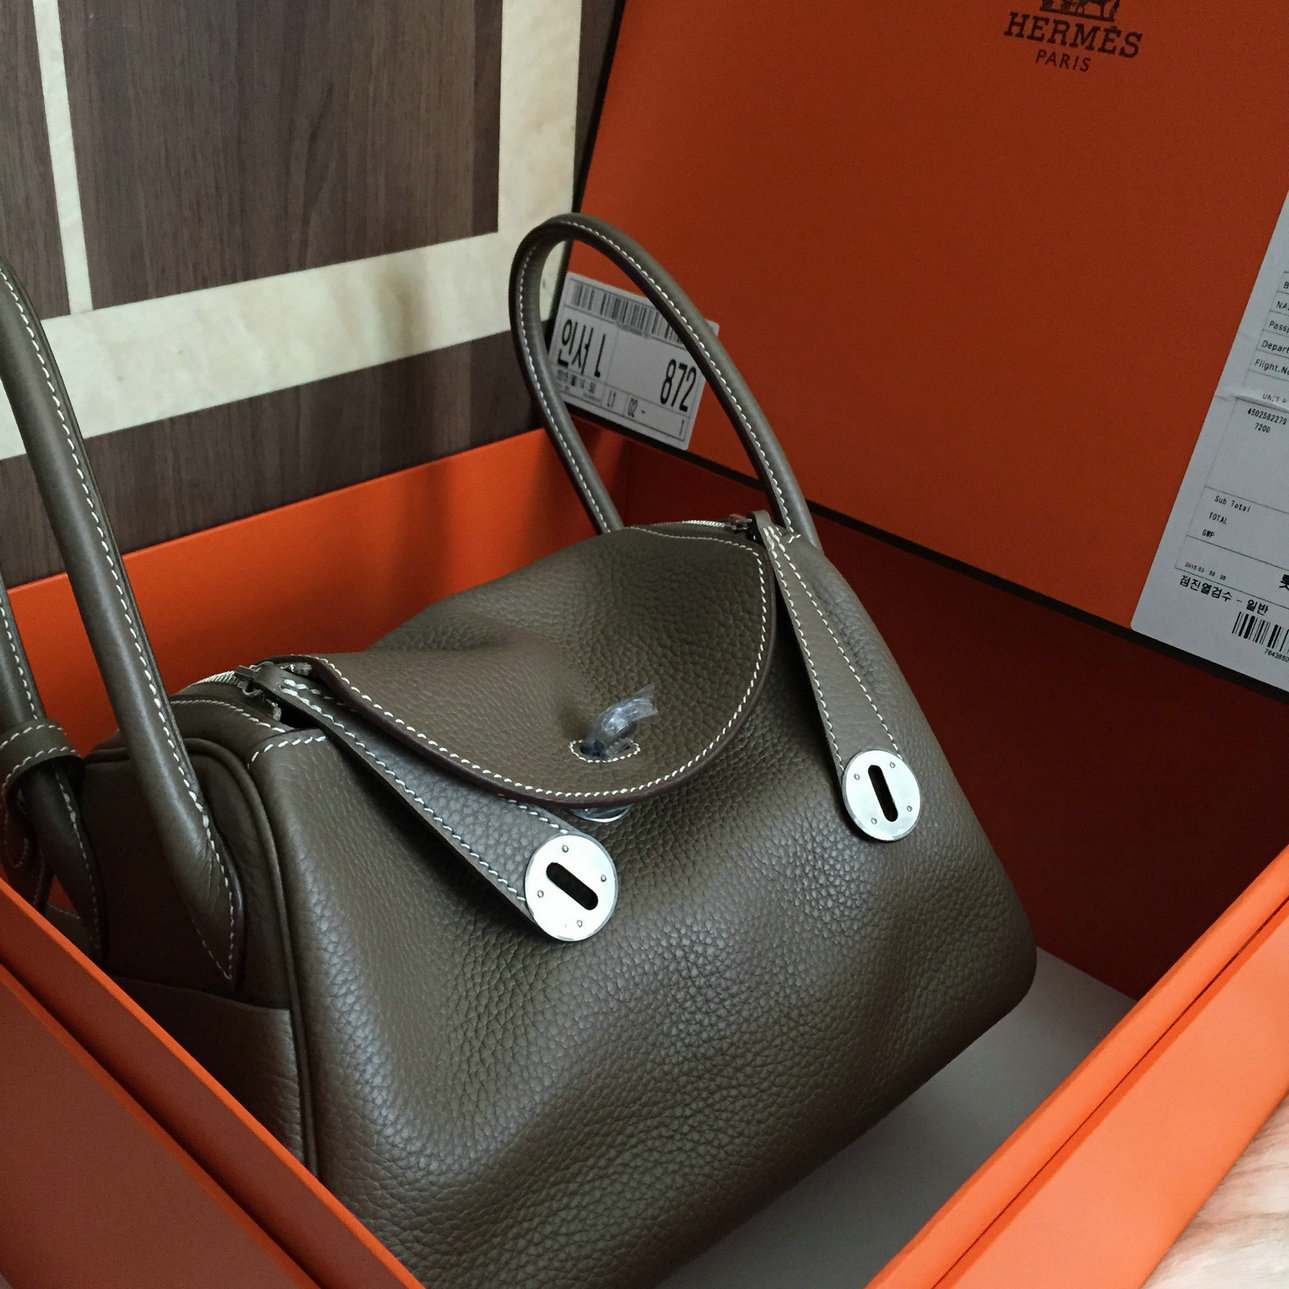 d0154656243c usa pre shipment photos hermes lindy 26cm full hand stitching in togo  leather best original quality